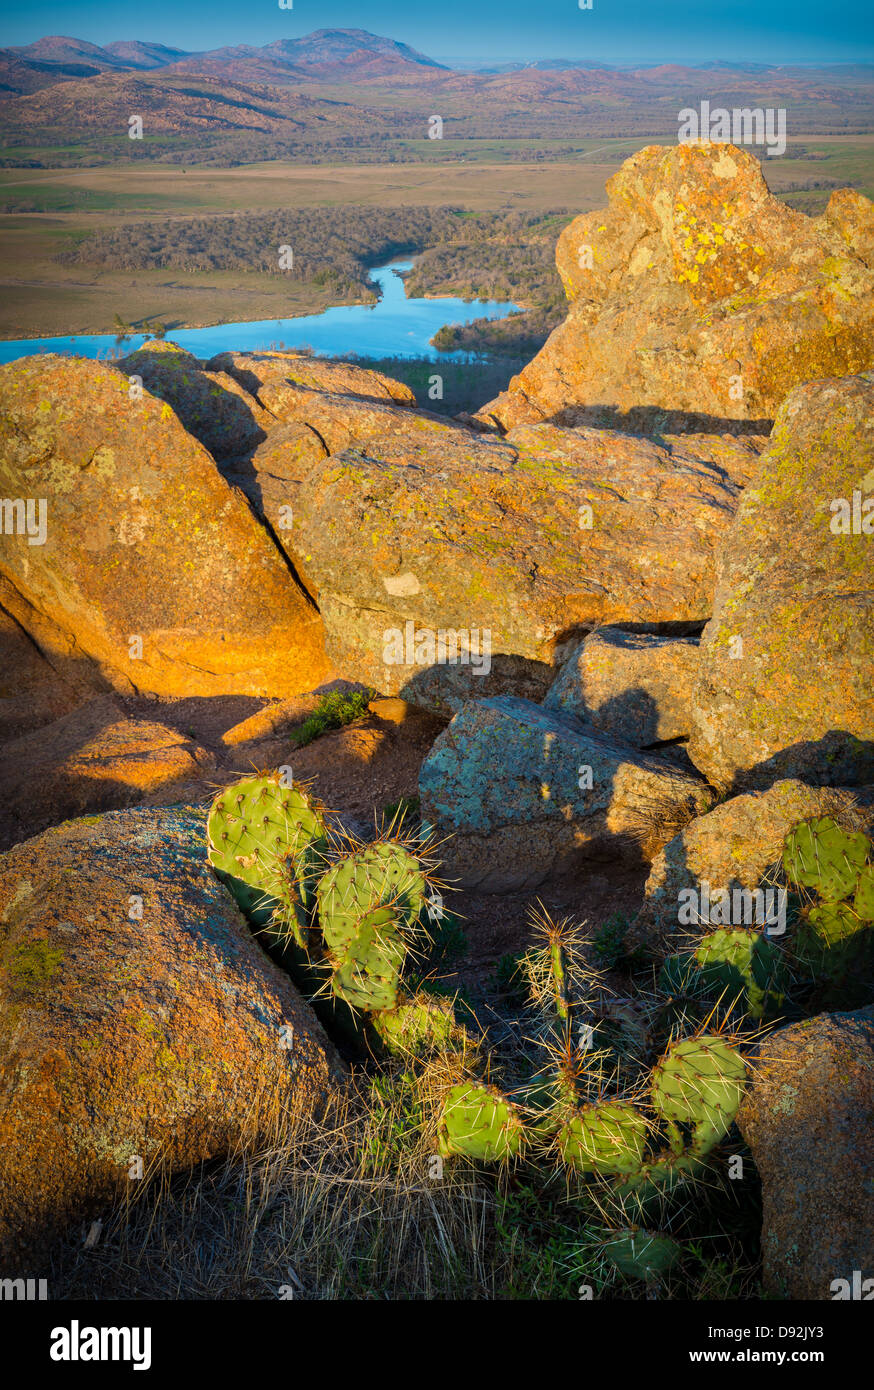 Vista desde el Elk Mountain en Wichita Mountains Wildlife Refuge, Oklahoma Imagen De Stock